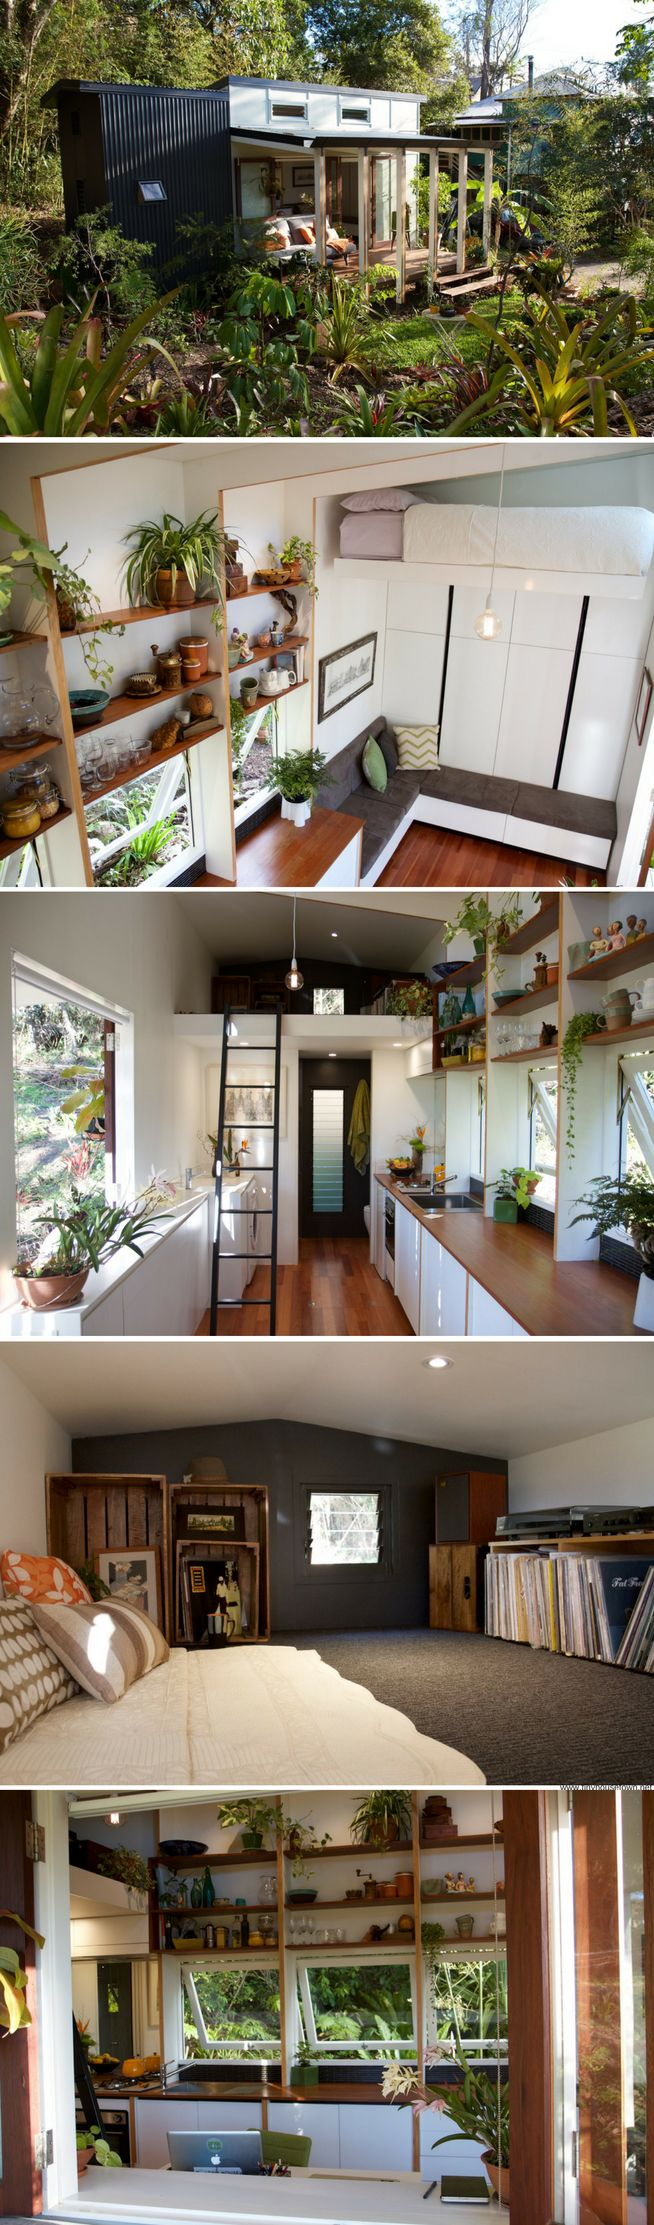 A gorgeous Australian tiny house the a retractable bed that lowers from the ceiling! Another awesome built in bench idea!